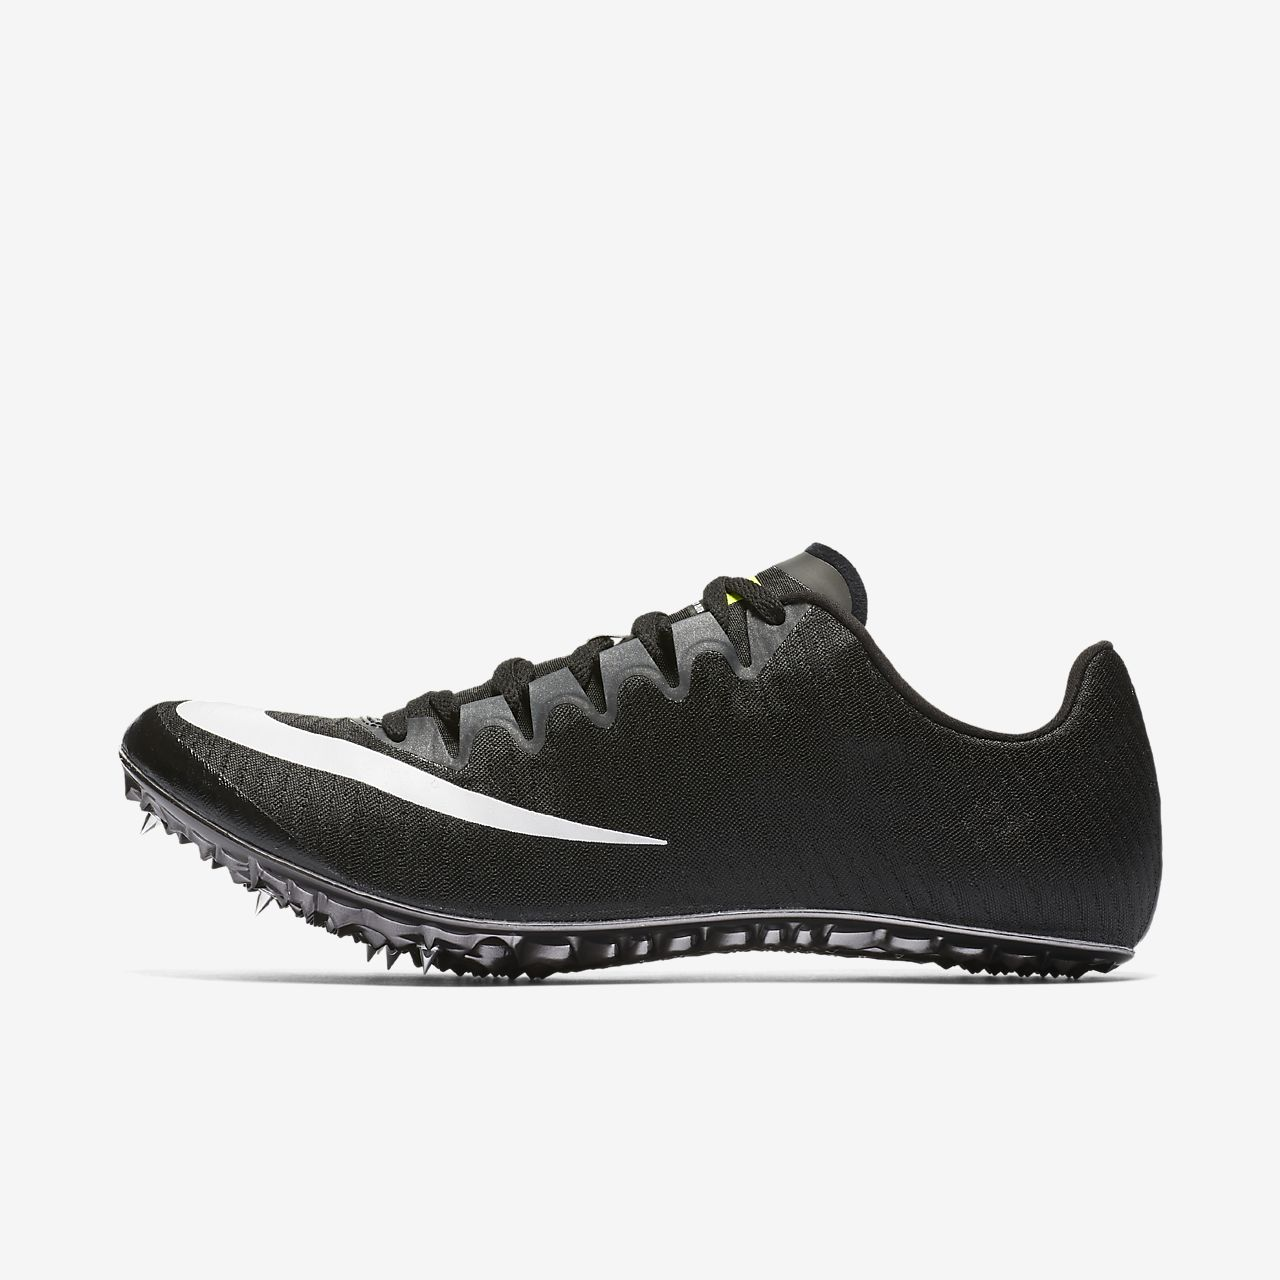 ... Nike Superfly Elite Zapatillas con clavos de competición - Unisex